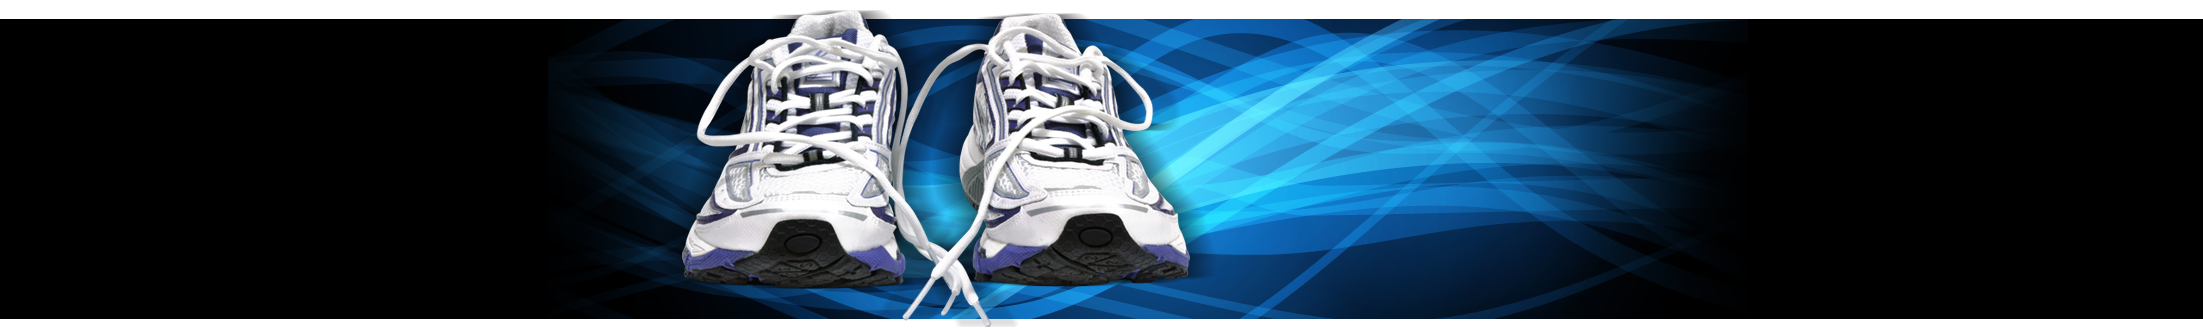 Anderson Peak Performance reviews page - image of a pair of trainers